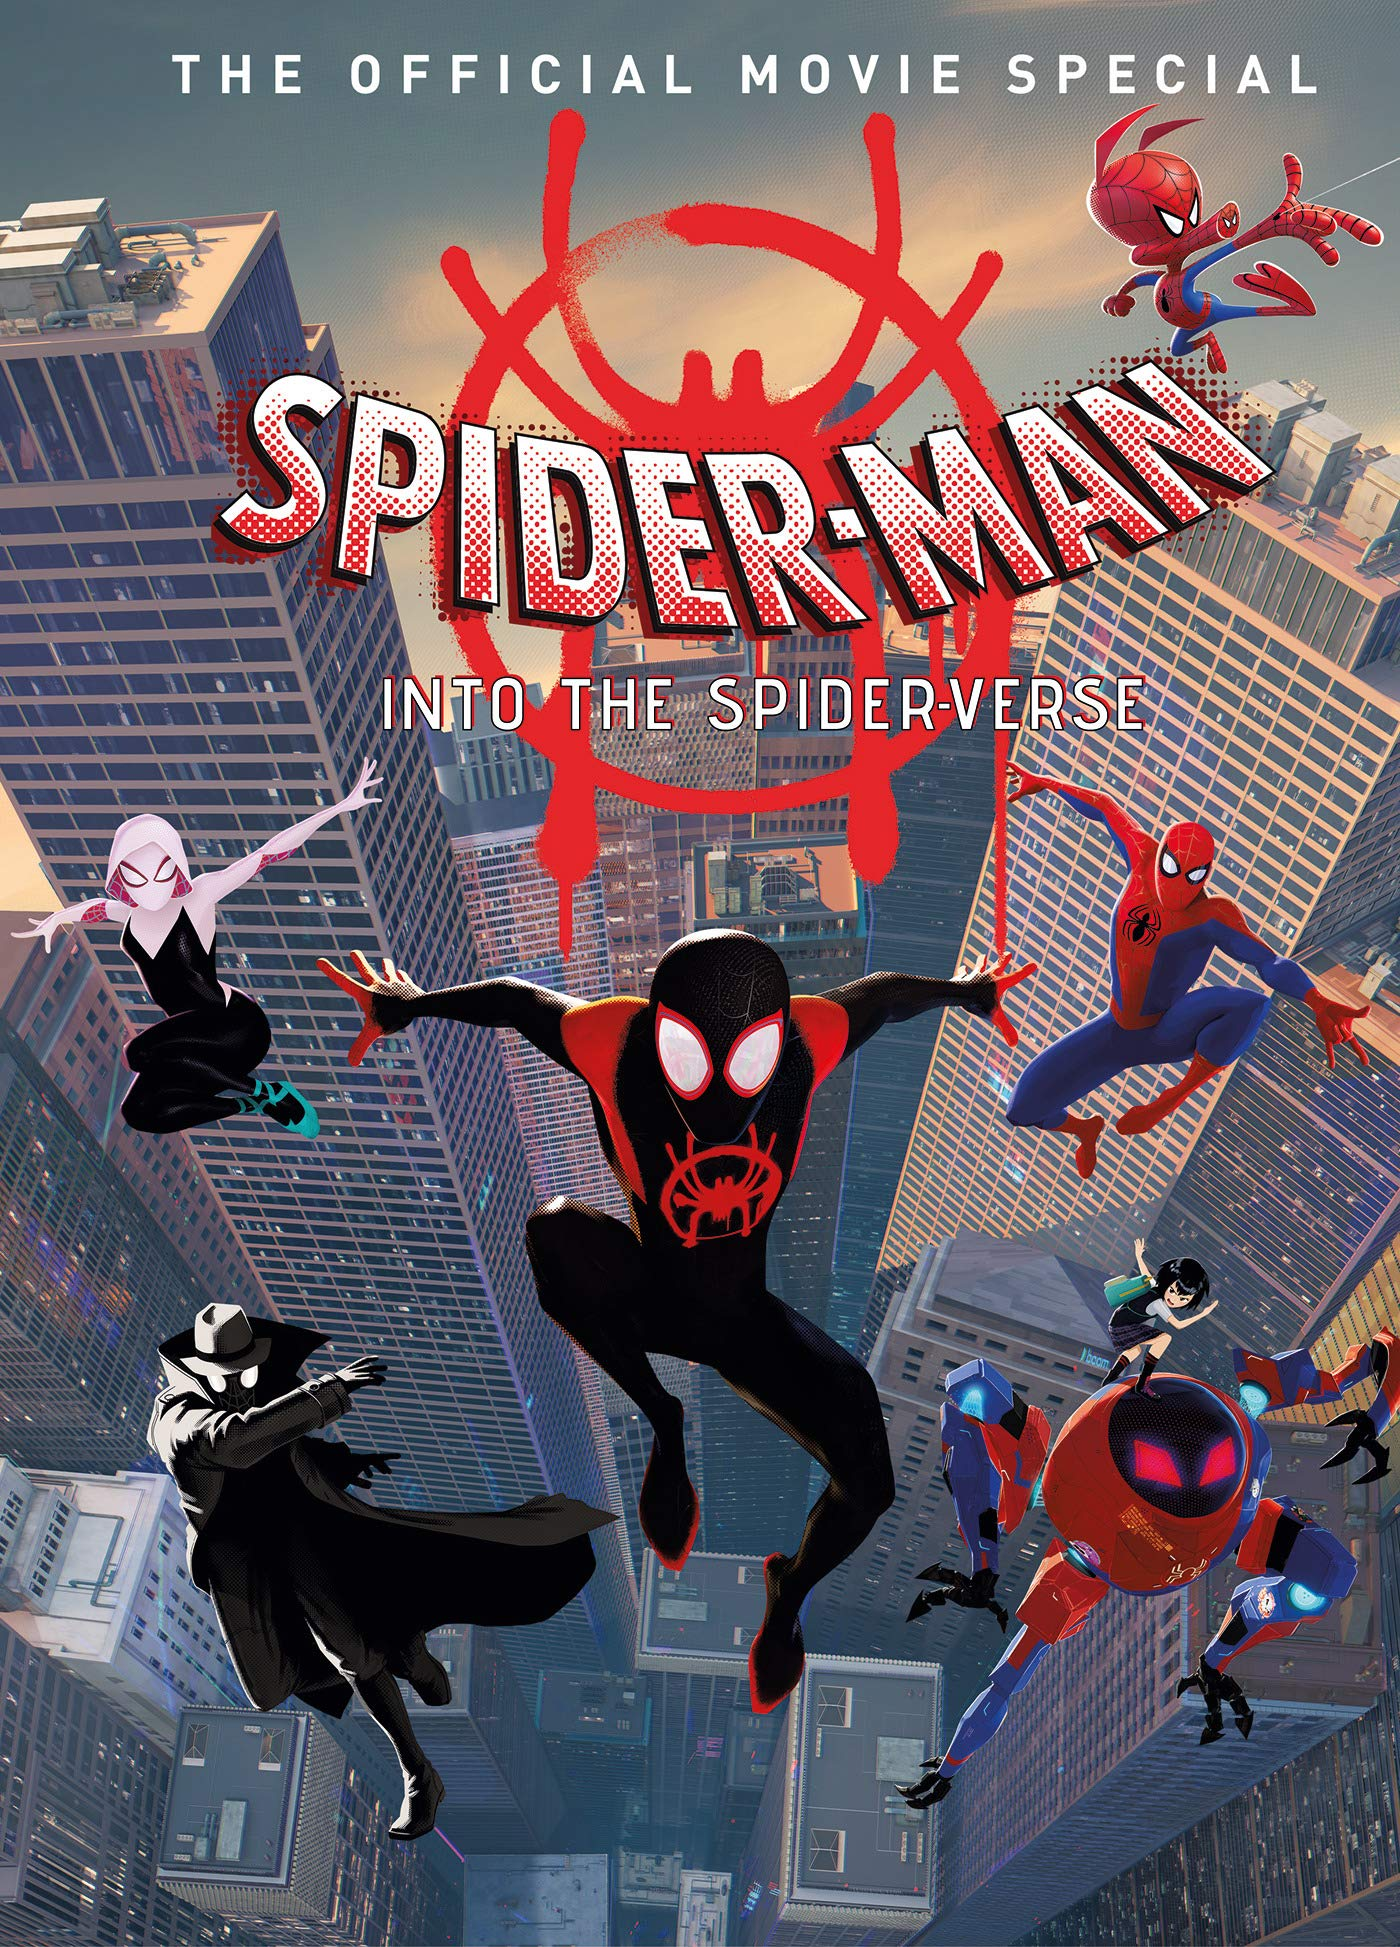 Spider-Man: Into The Spider-Verse The Official Movie Special review